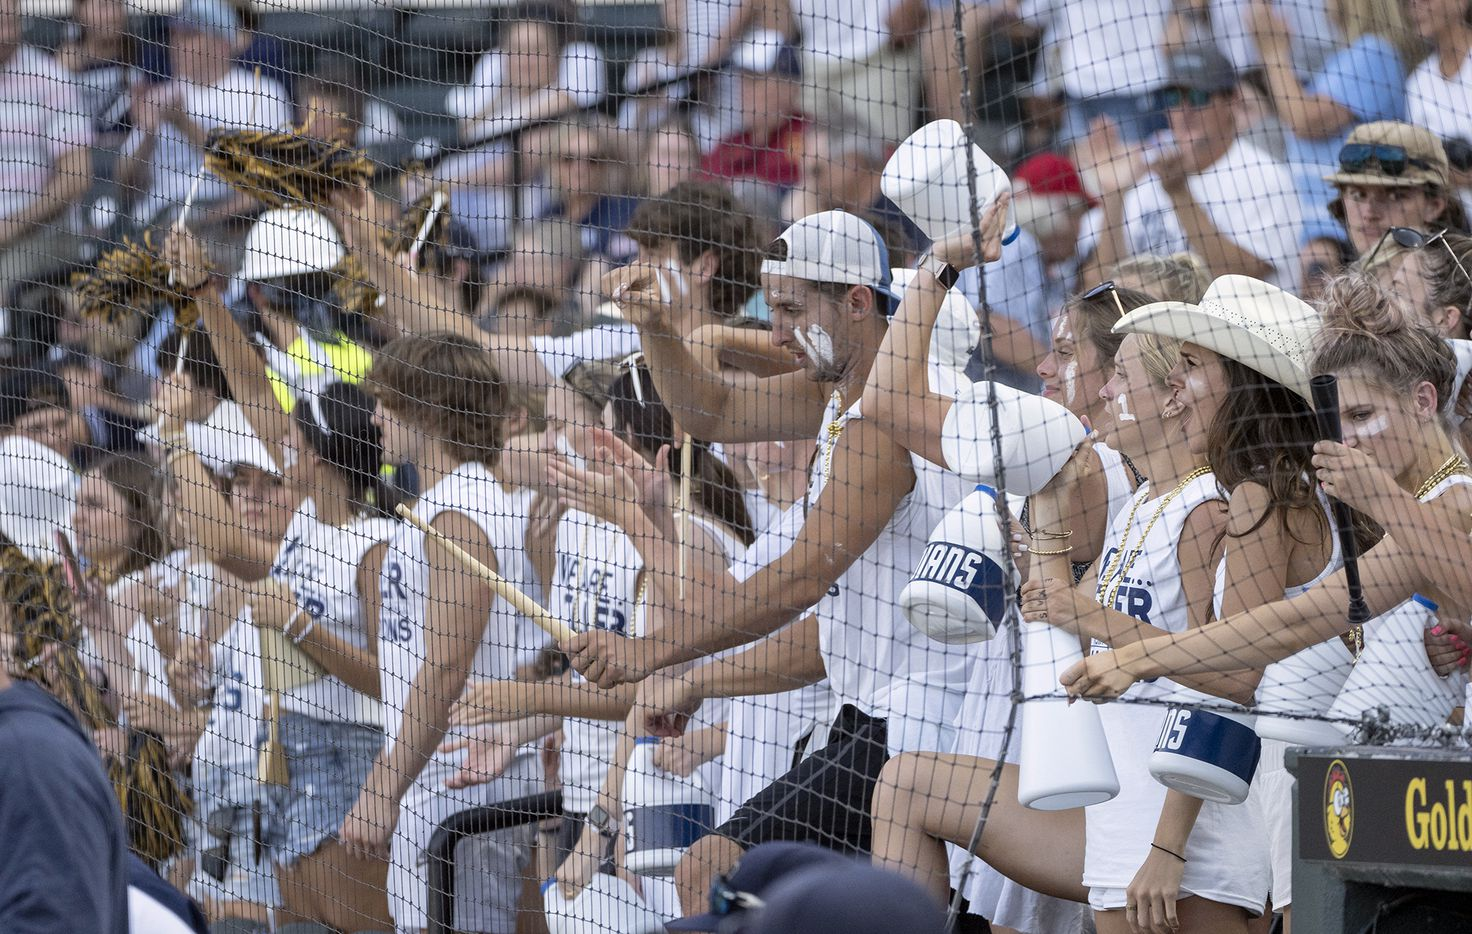 Keller fans cheer on the Indians after defeating Houston Strake Jesuit during the 2021 UIL 6A state baseball semifinals held, Friday, June 11, 2021, in Round Rock, Texas.     Keller defeated Strake Jesuit 7-1. (Rodolfo Gonzalez/Special Contributor)